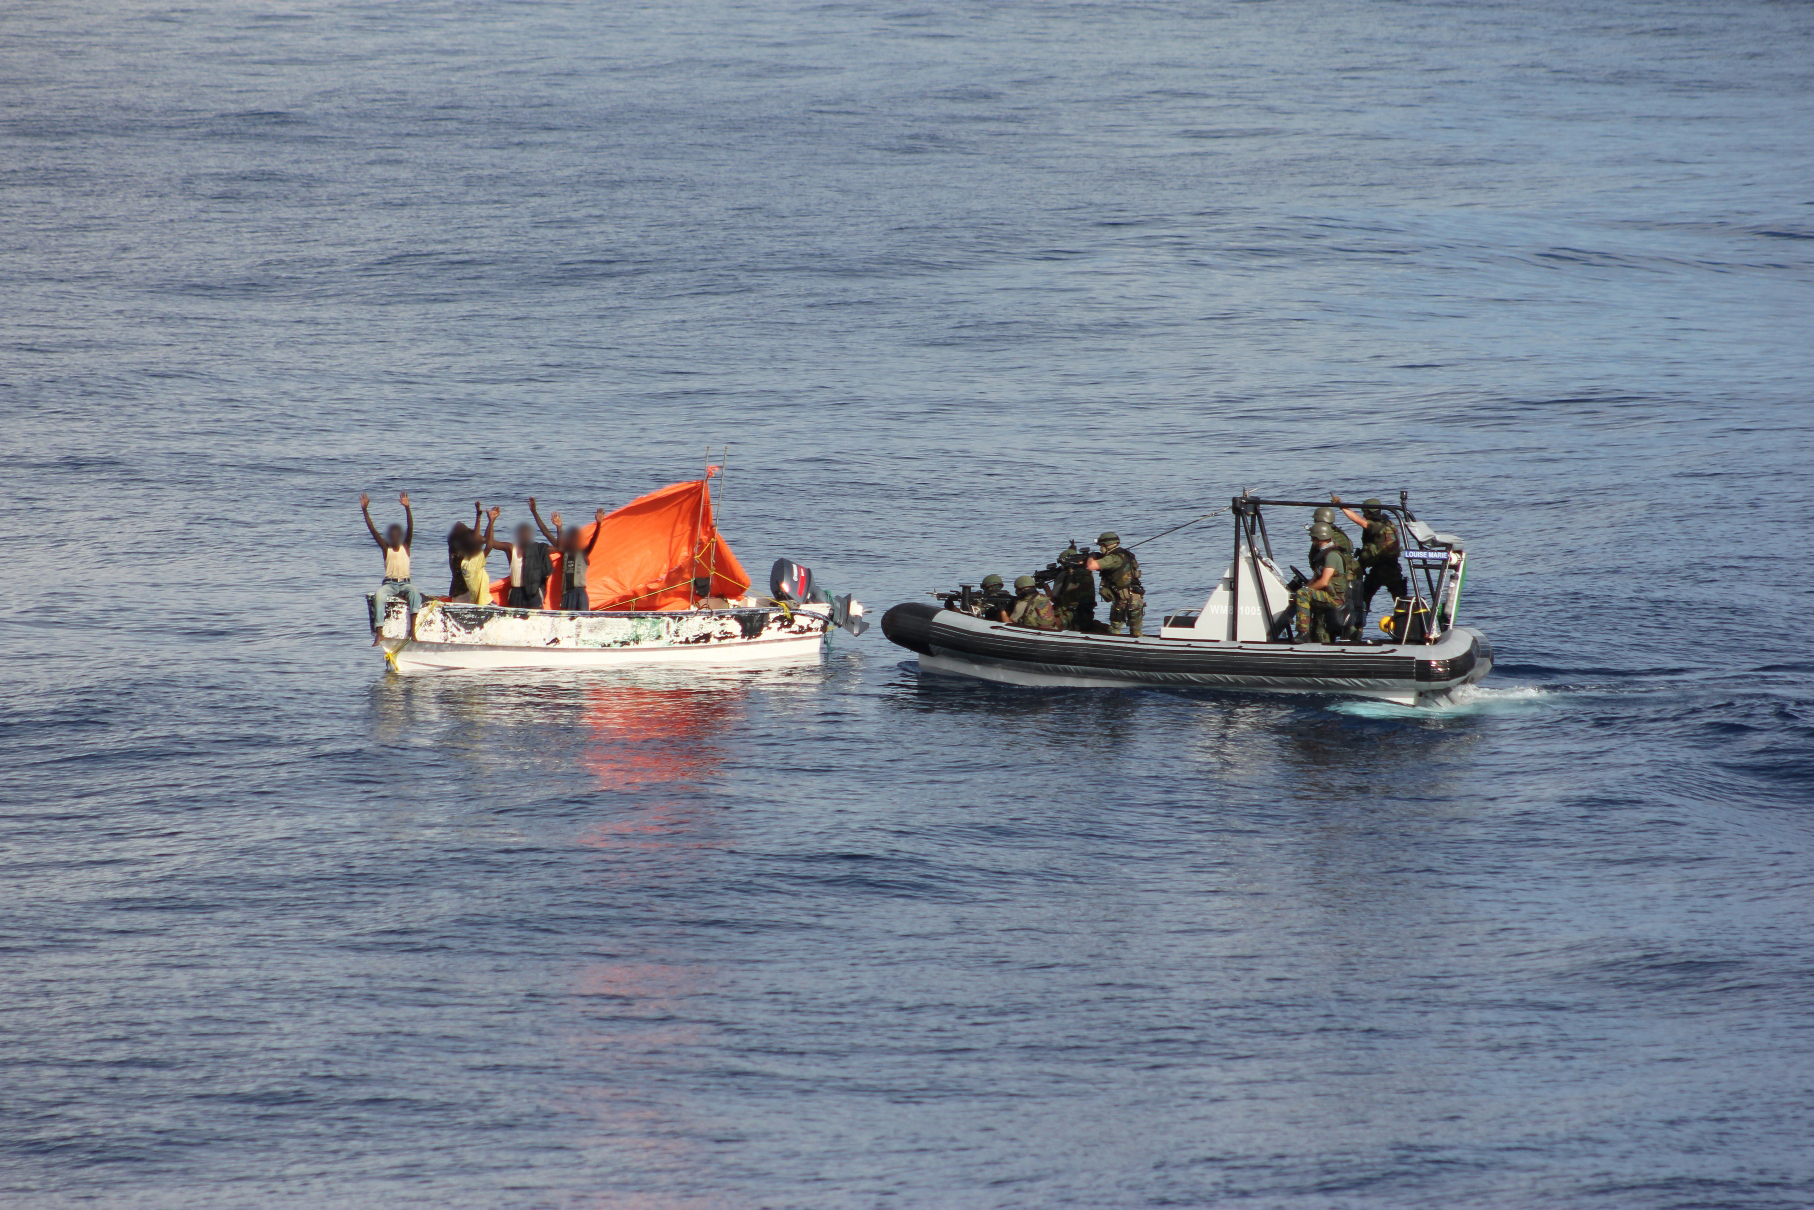 EU Naval Force intercept a skiff with suspected pirates on board, December 15 2012. By EUNAVFOR.